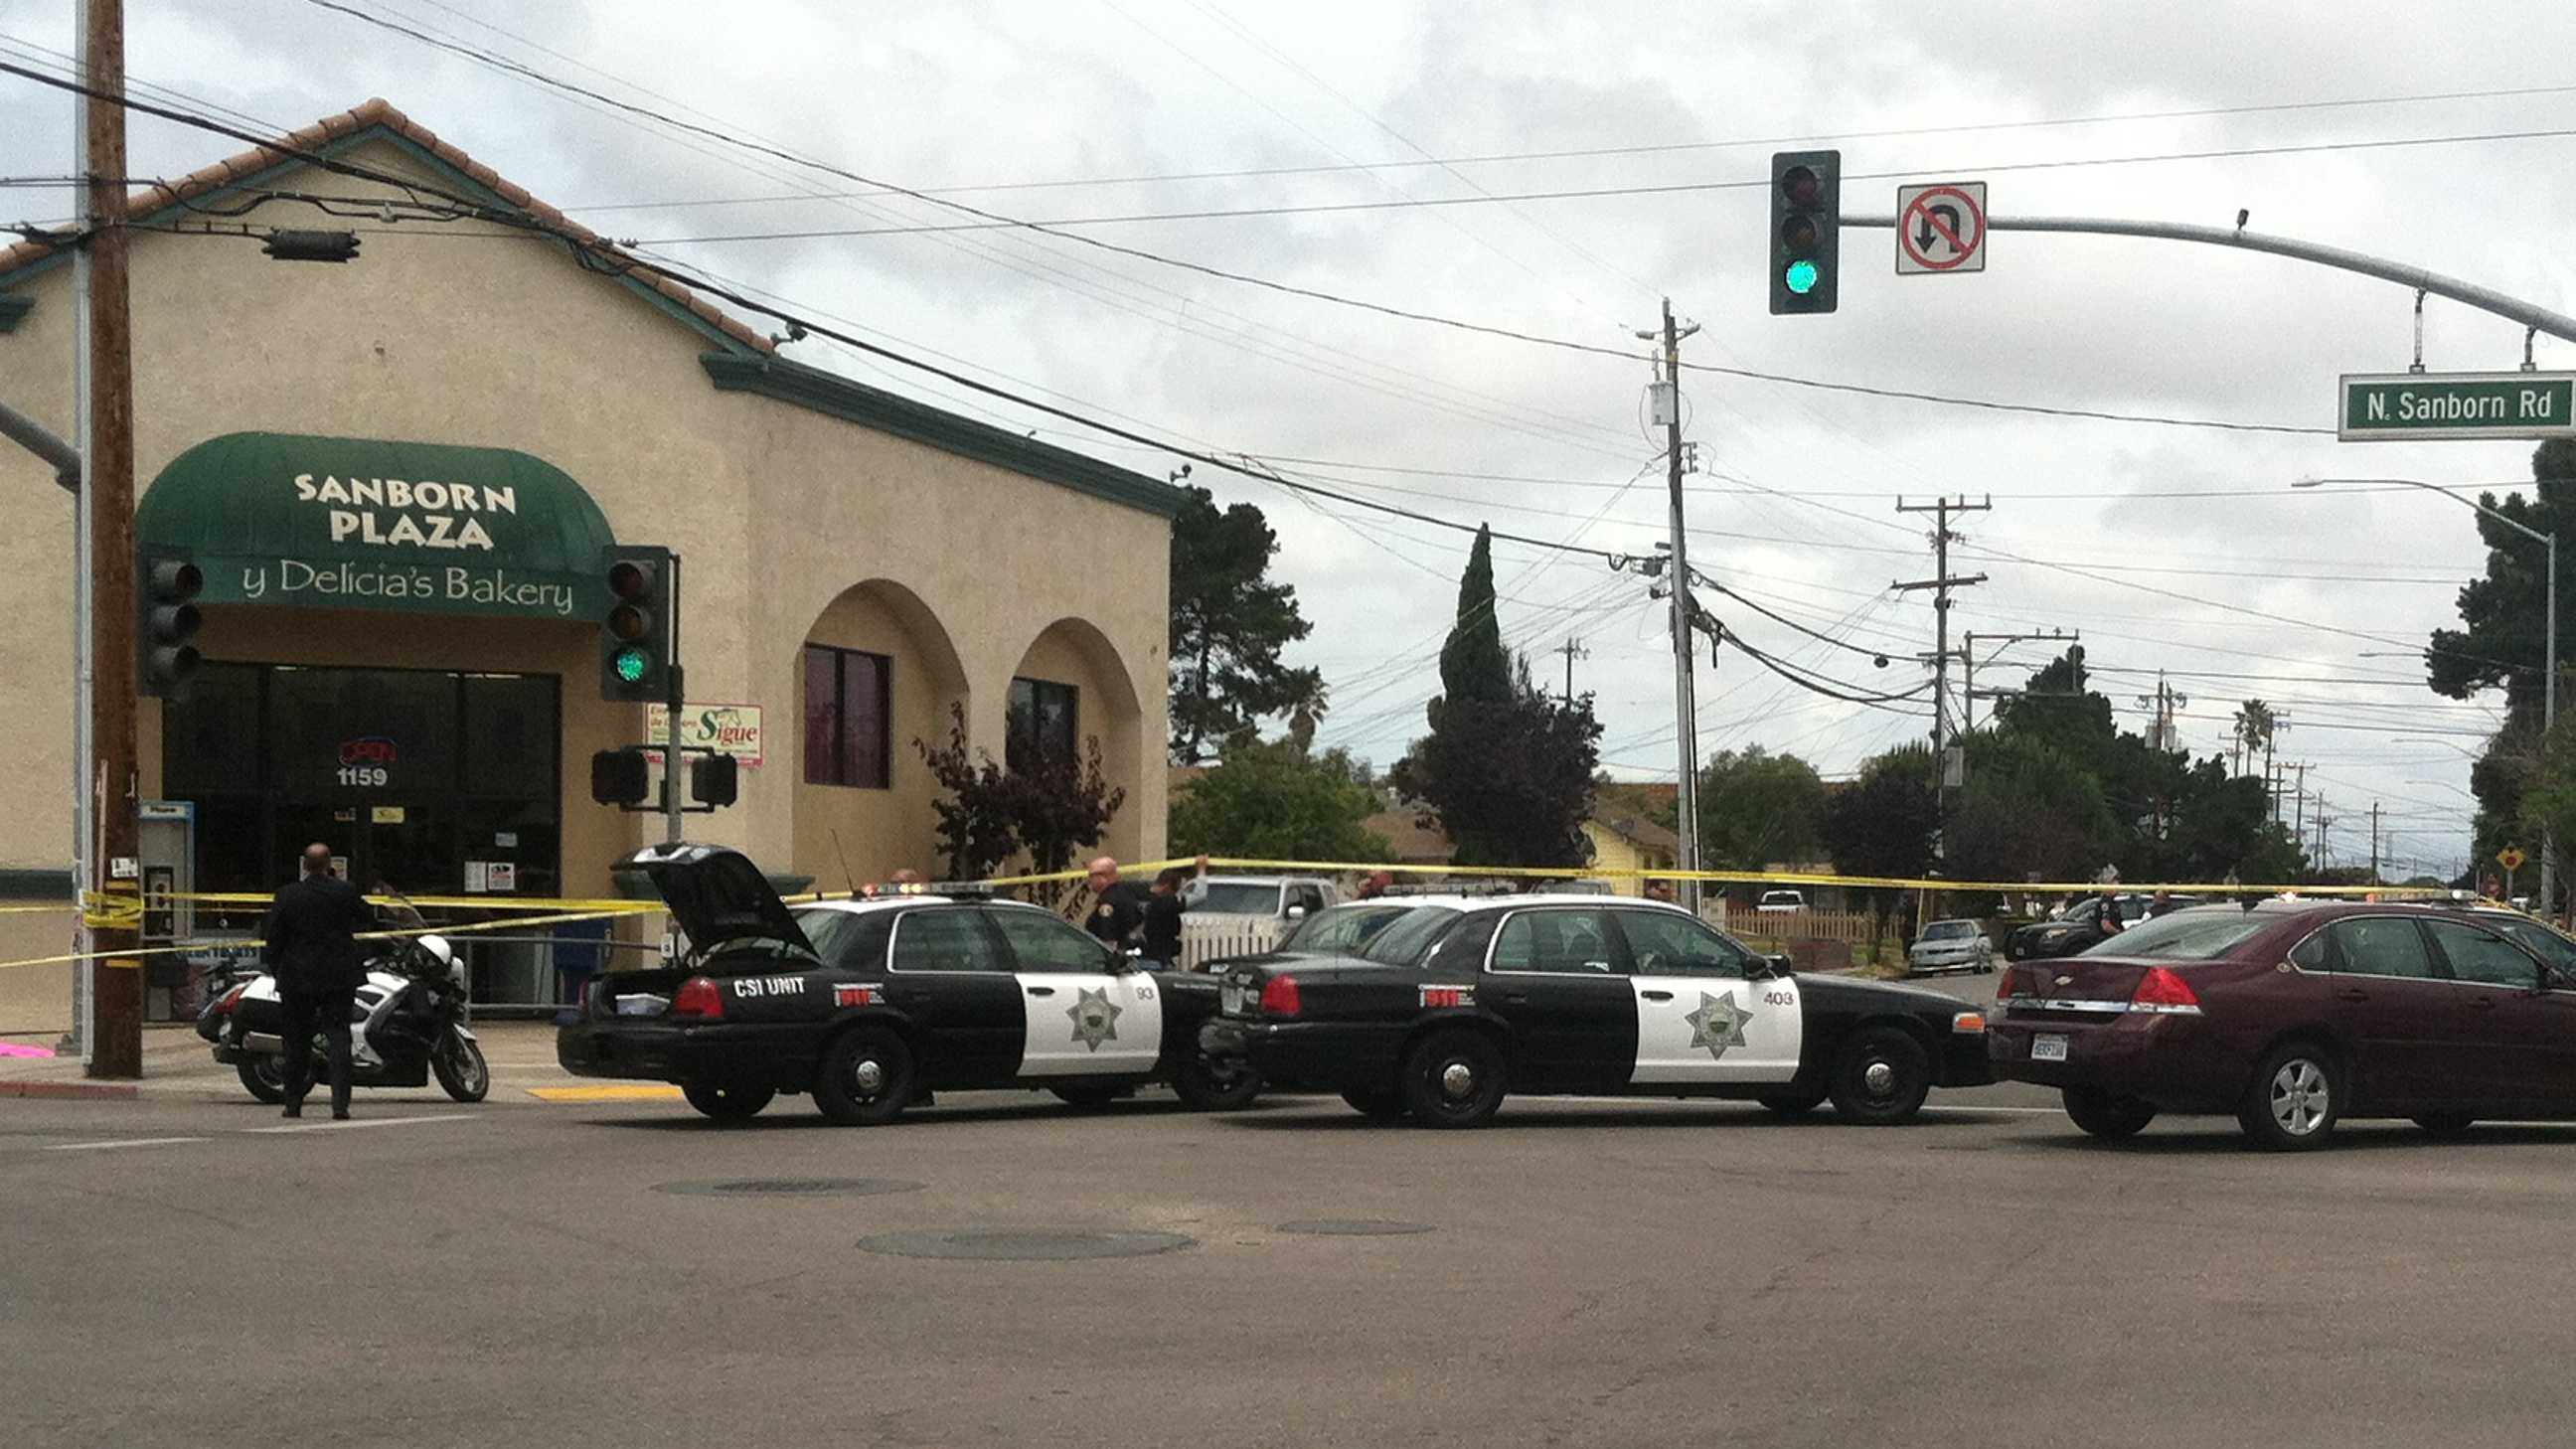 One person has been shot outside a bakery at Sanborn Plaza in Salinas.